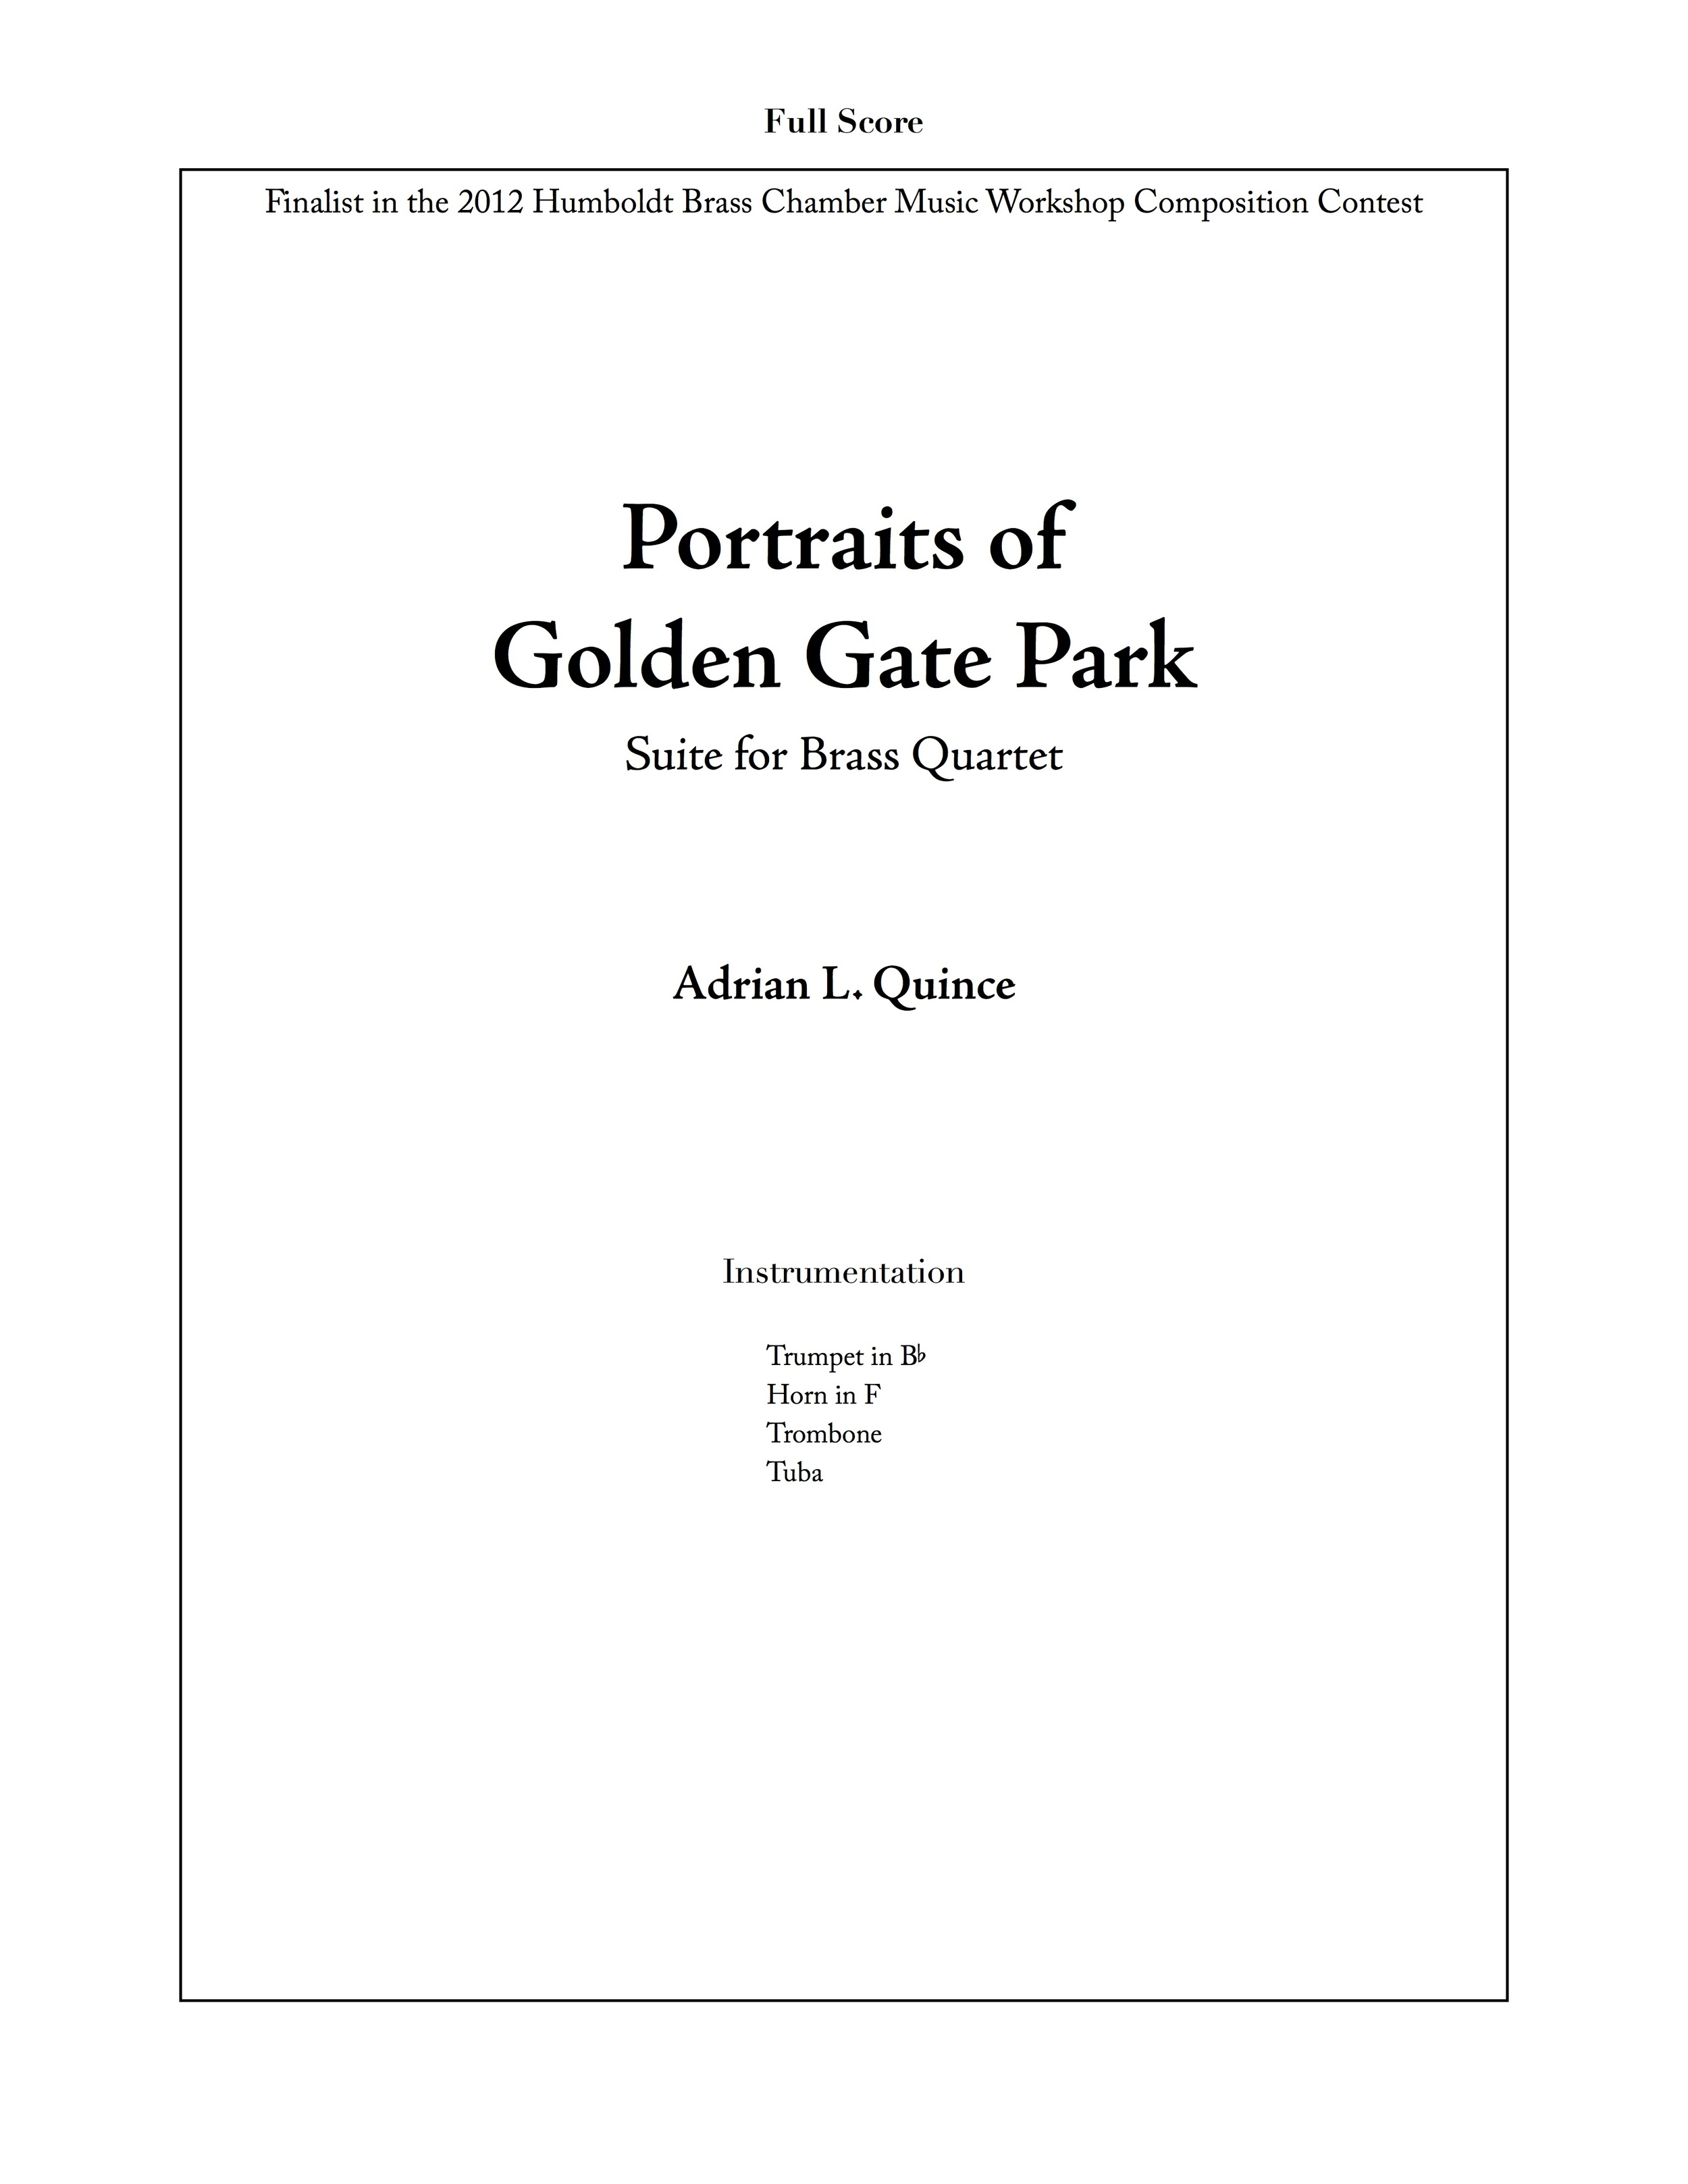 Portraits of Golden Gate Park 1.jpg